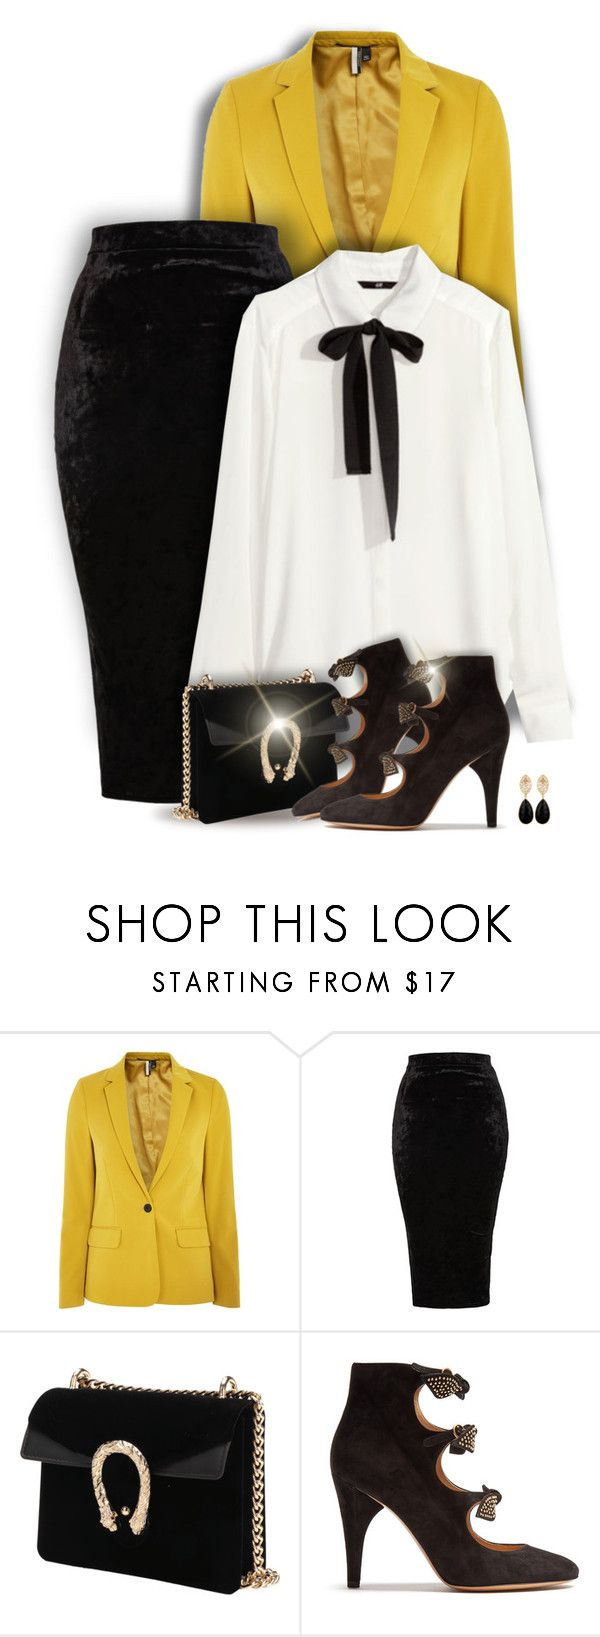 """From day to night"" by kiki-bi ❤ liked on Polyvore featuring Topshop, TFNC, Chloé and Carousel Jewels"